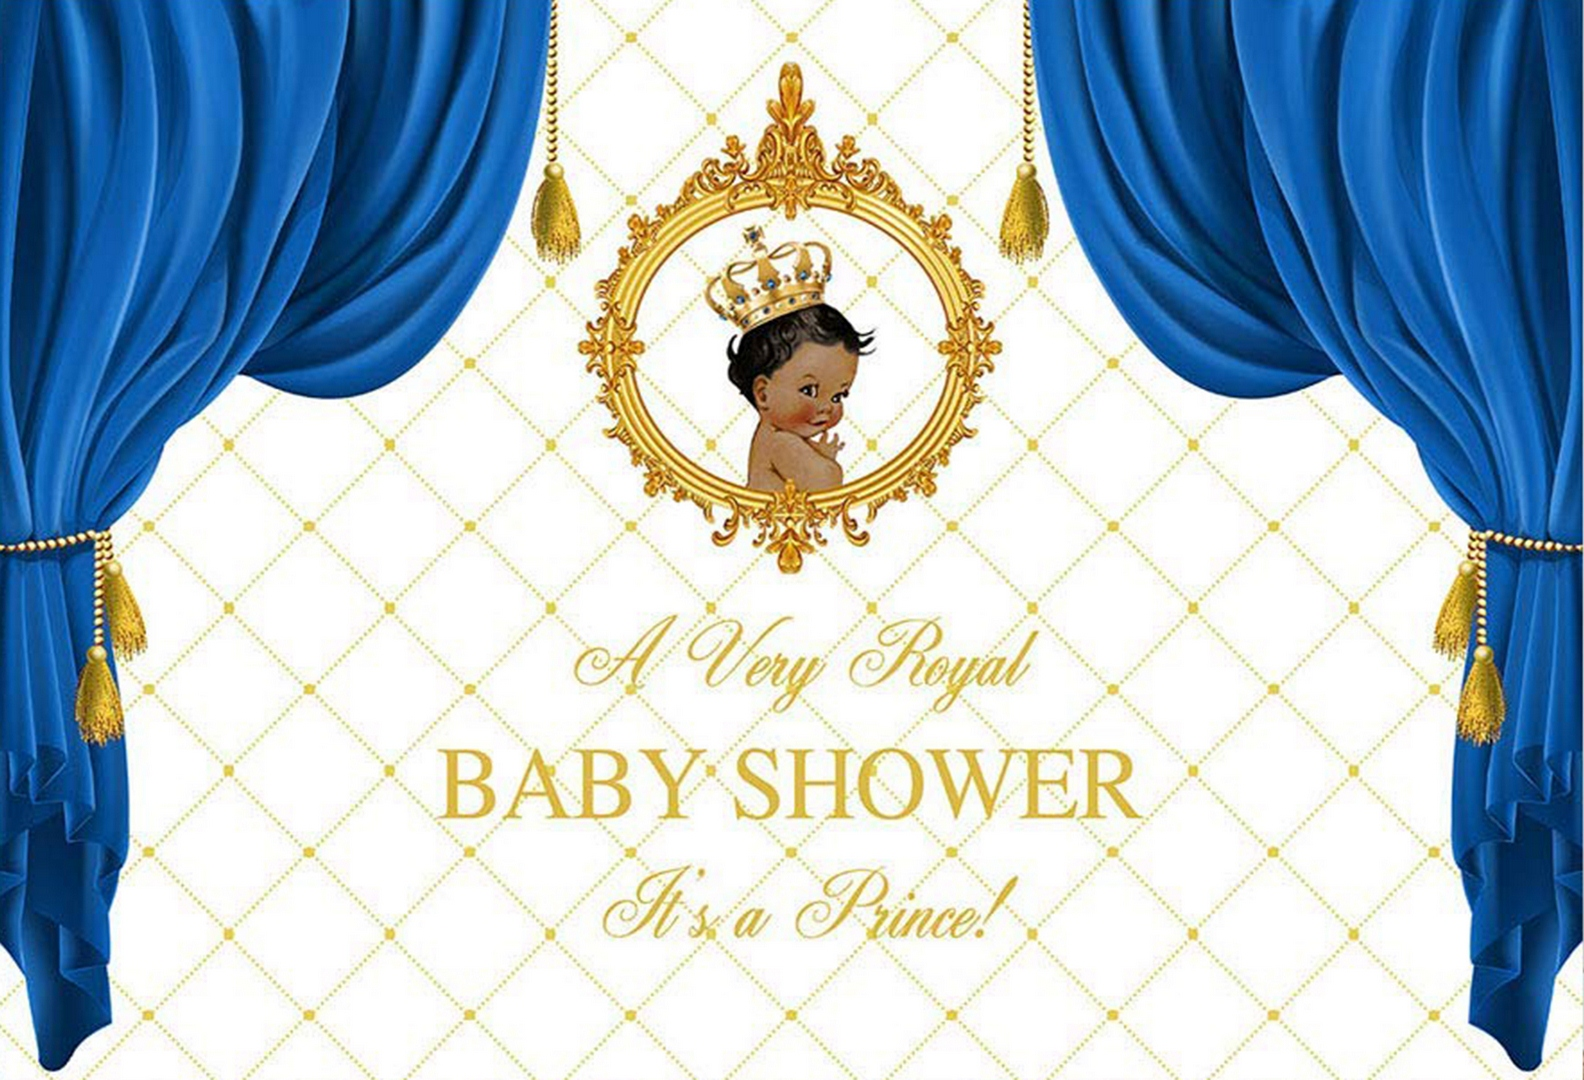 A Very Royal Baby Shower Backdrop A Prince Babyshower Party Background Boy Poster Gold Royal Blue Curtain Photo Booth Banner Background Aliexpress